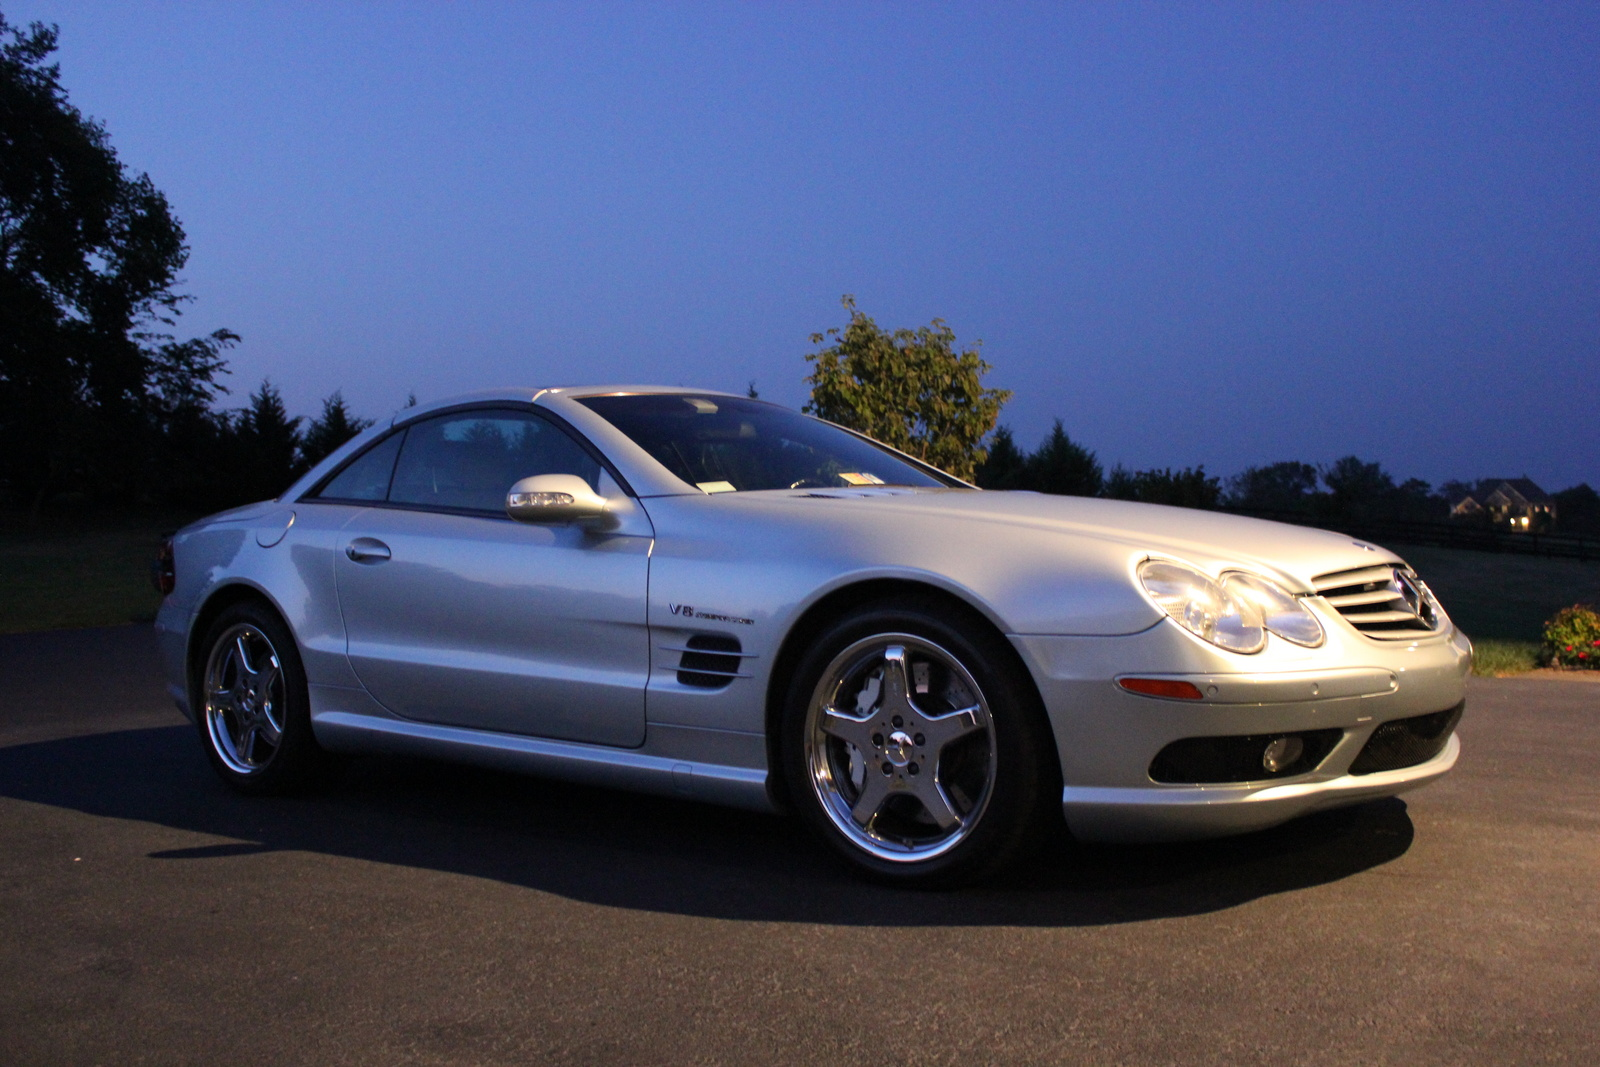 2003 mercedes benz sl class pictures cargurus for Mercedes benz sl55